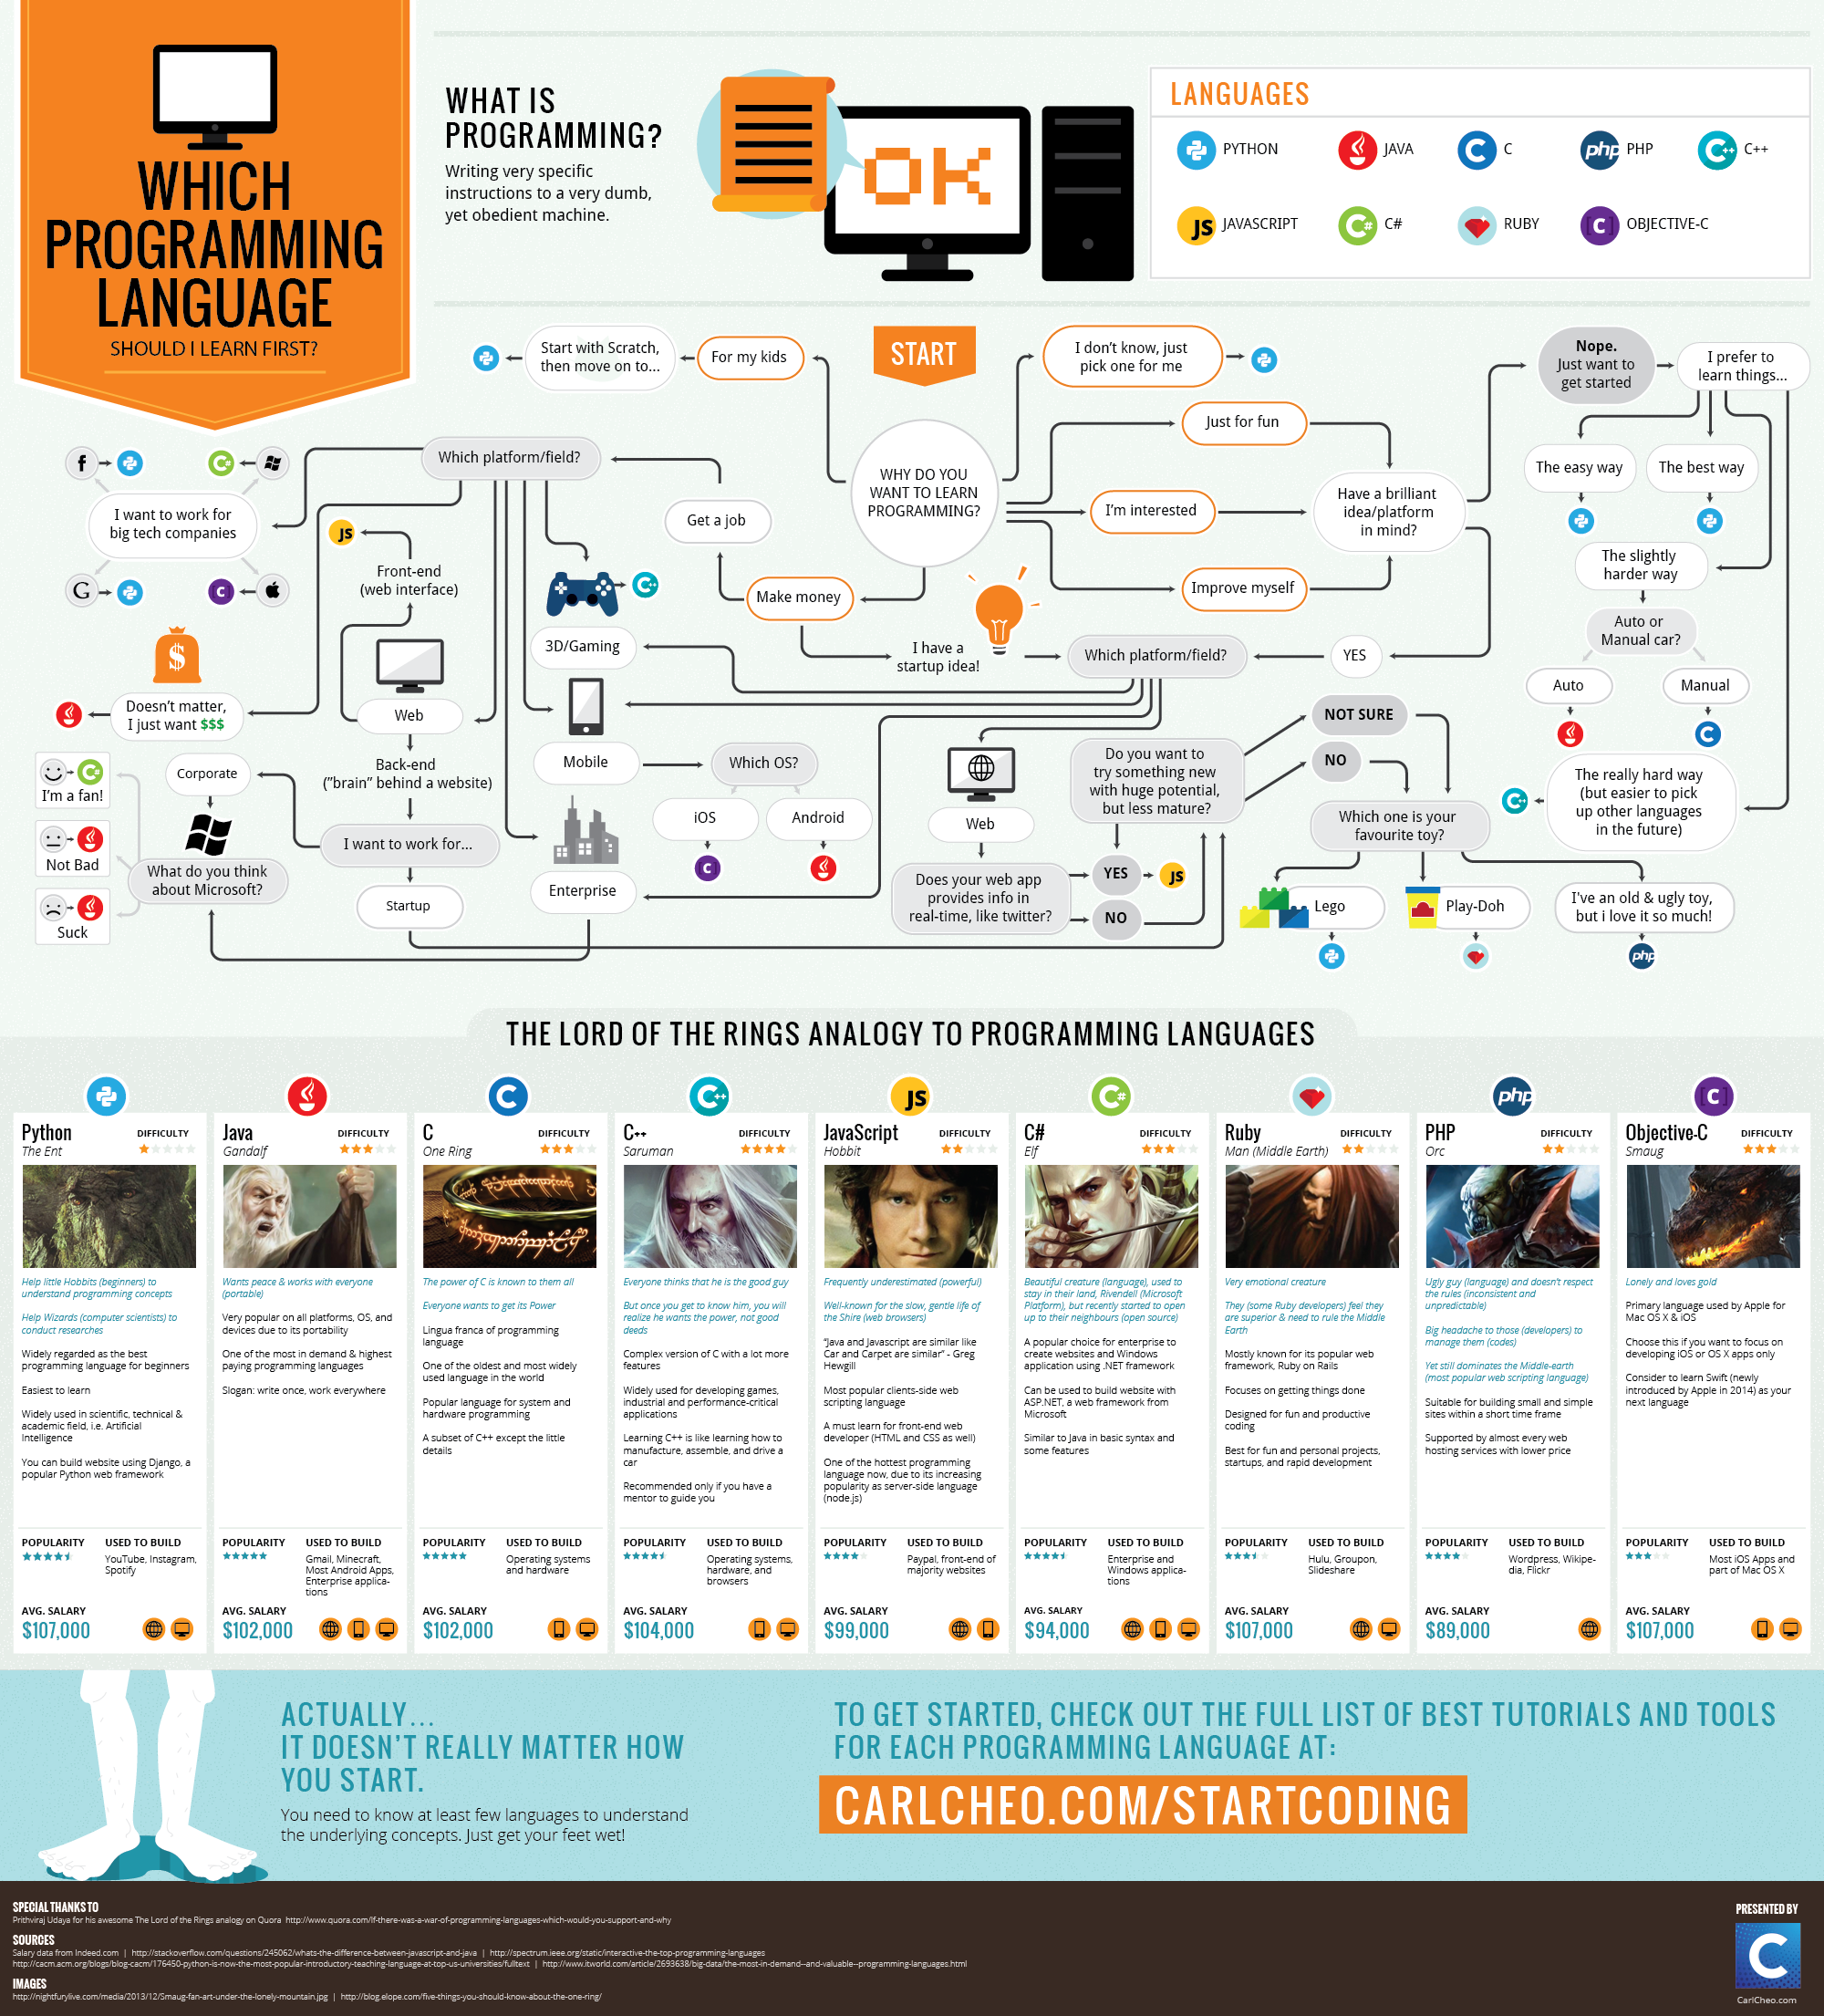 http://carlcheo.com/wp-content/uploads/2014/12/which-programming-language-should-i-learn-first-infographic.png